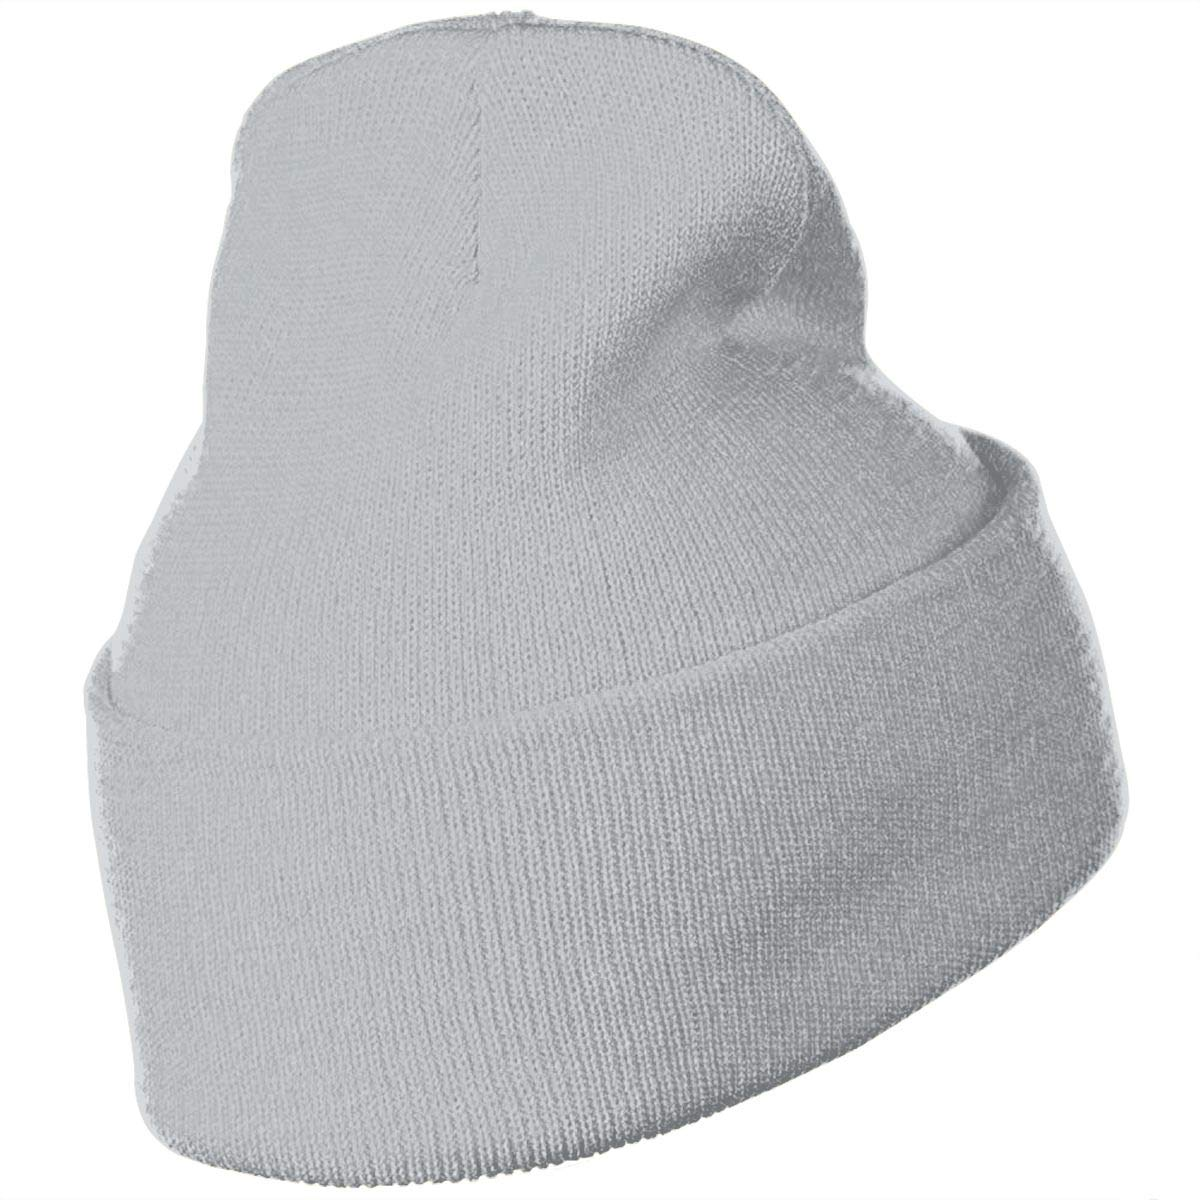 Made with Love Unisex Fashion Knitted Hat Luxury Hip-Hop Cap